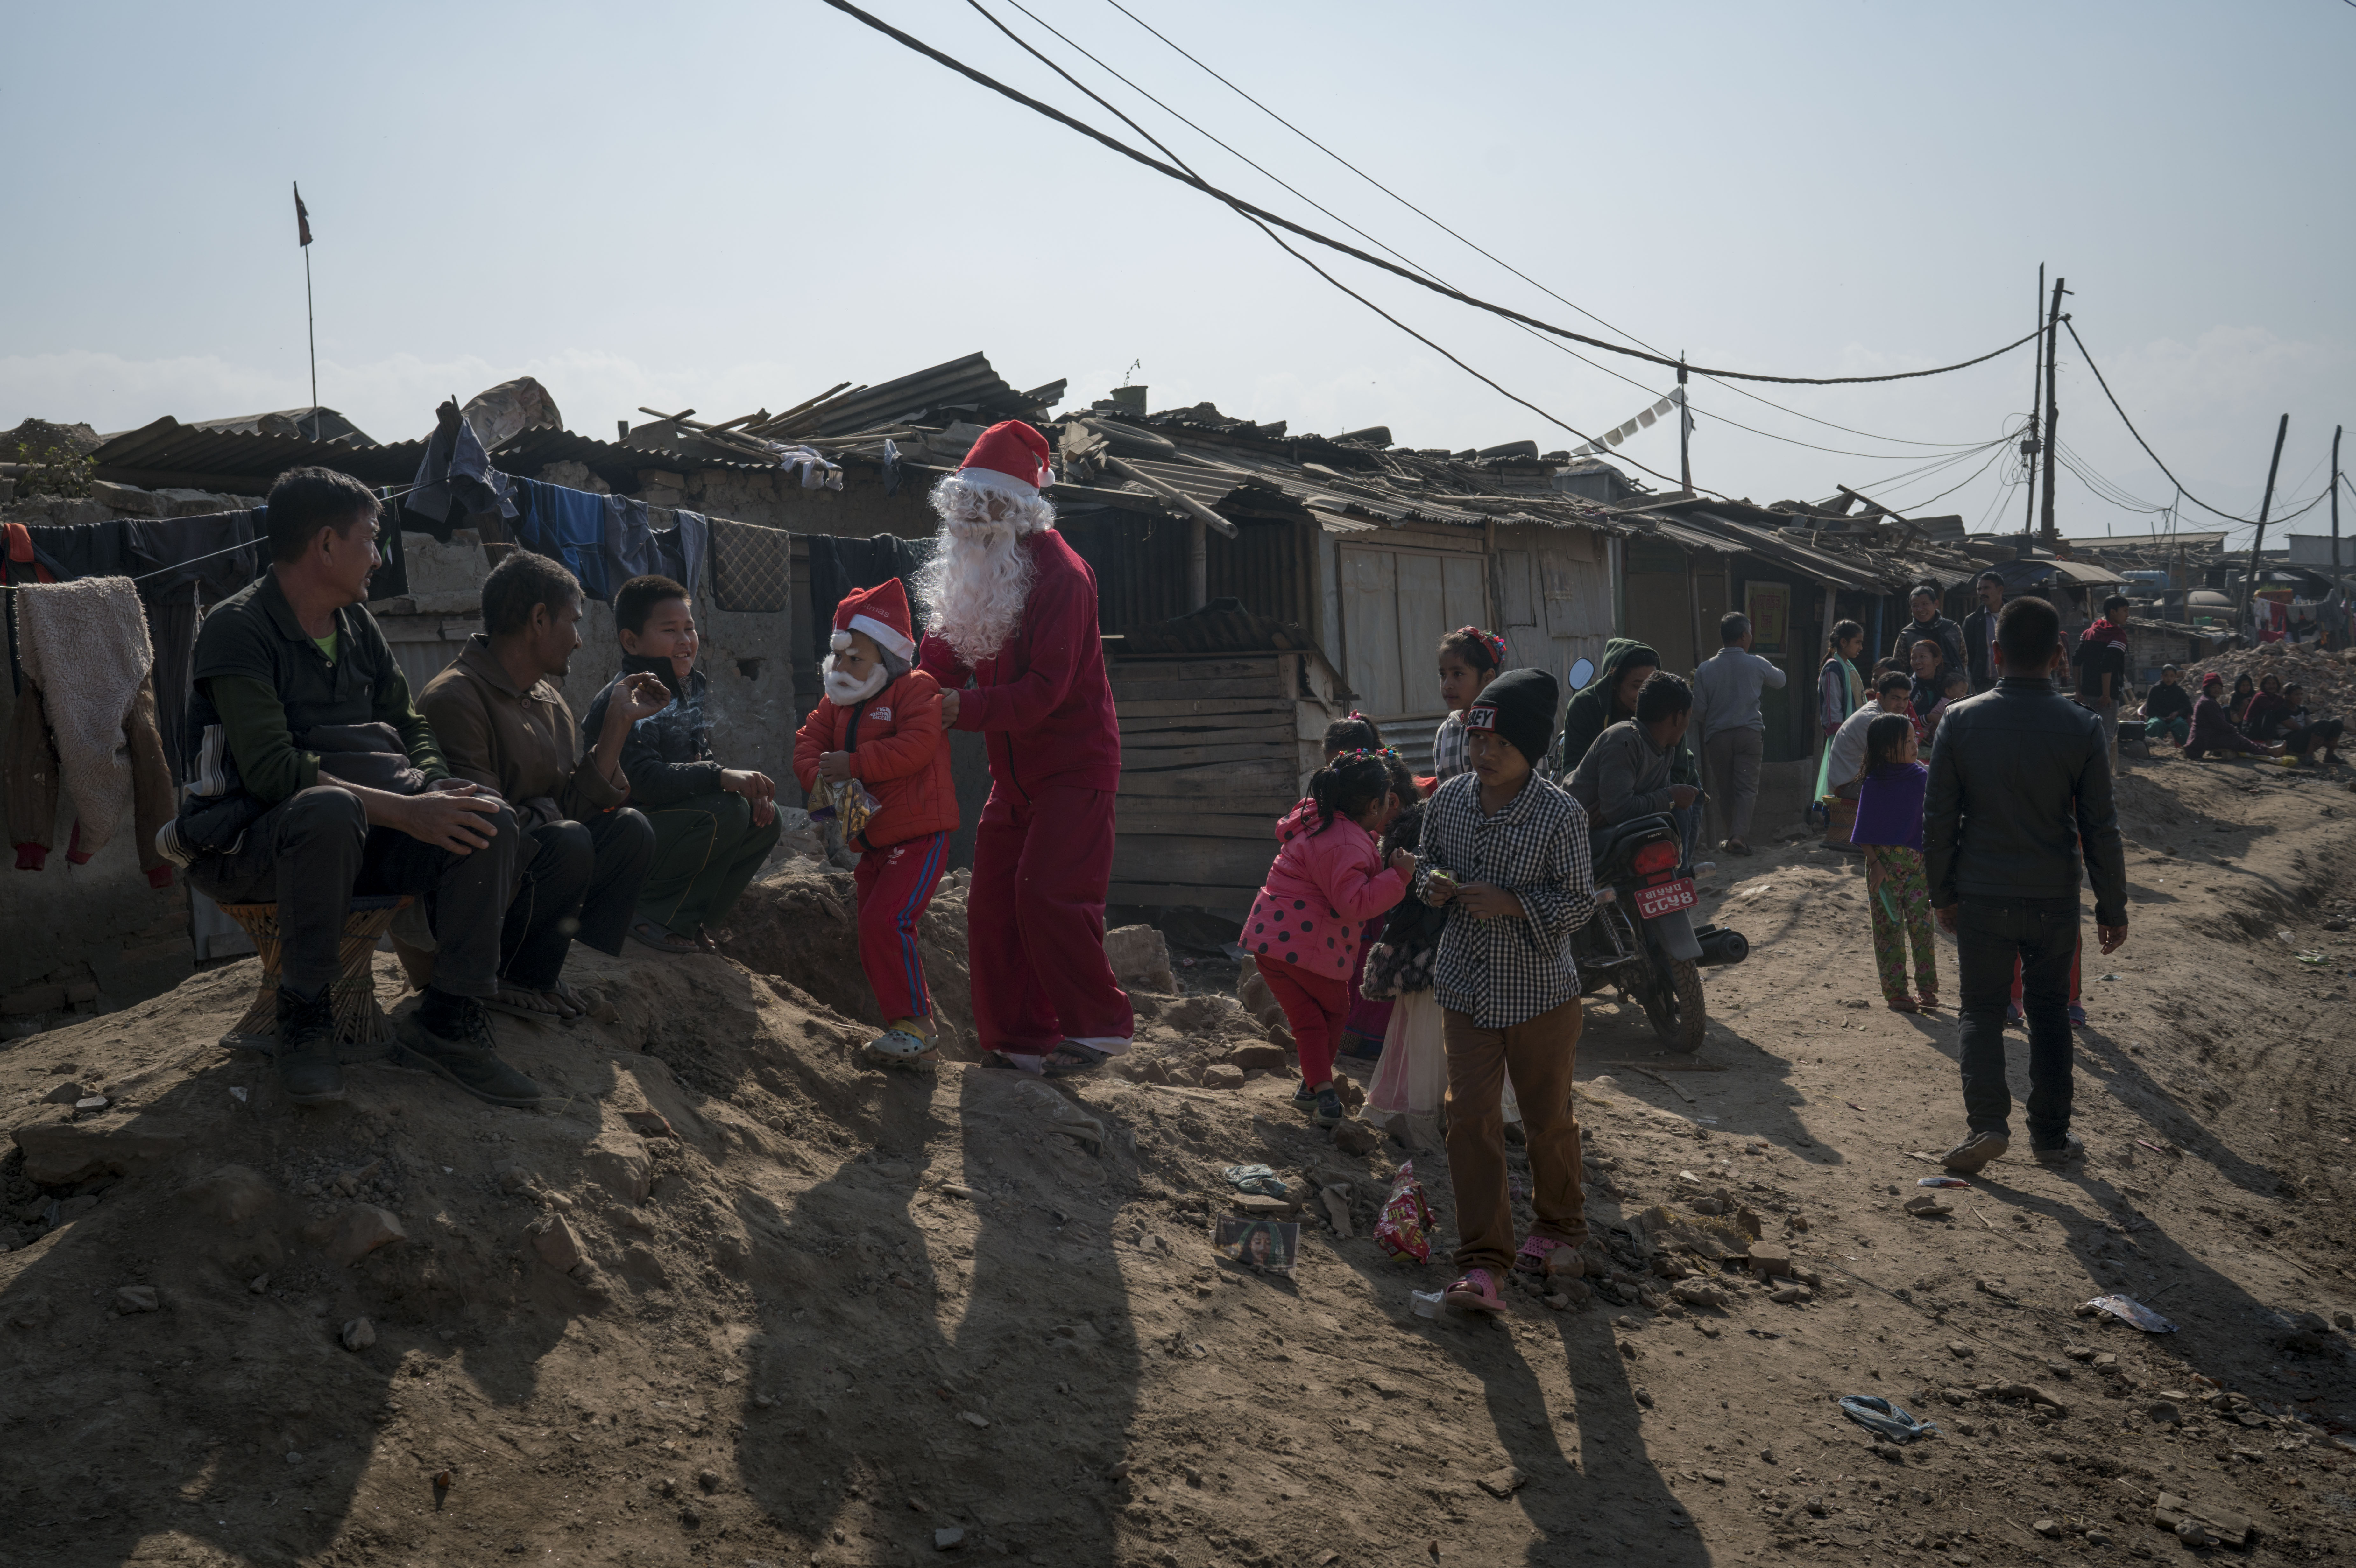 KATHMANDU, KATHMANDU - DECEMBER 25: Christians wearing Santa costumes celebrate Christmas in a slum area by handing out sweets on December 25, 2016 in Kathmandu, Nepal. Many Christians in Nepal celebrate Christmas by copying traditional European Christmas symbols. (Photo by Tom Van Cakenberghe/Getty Images)